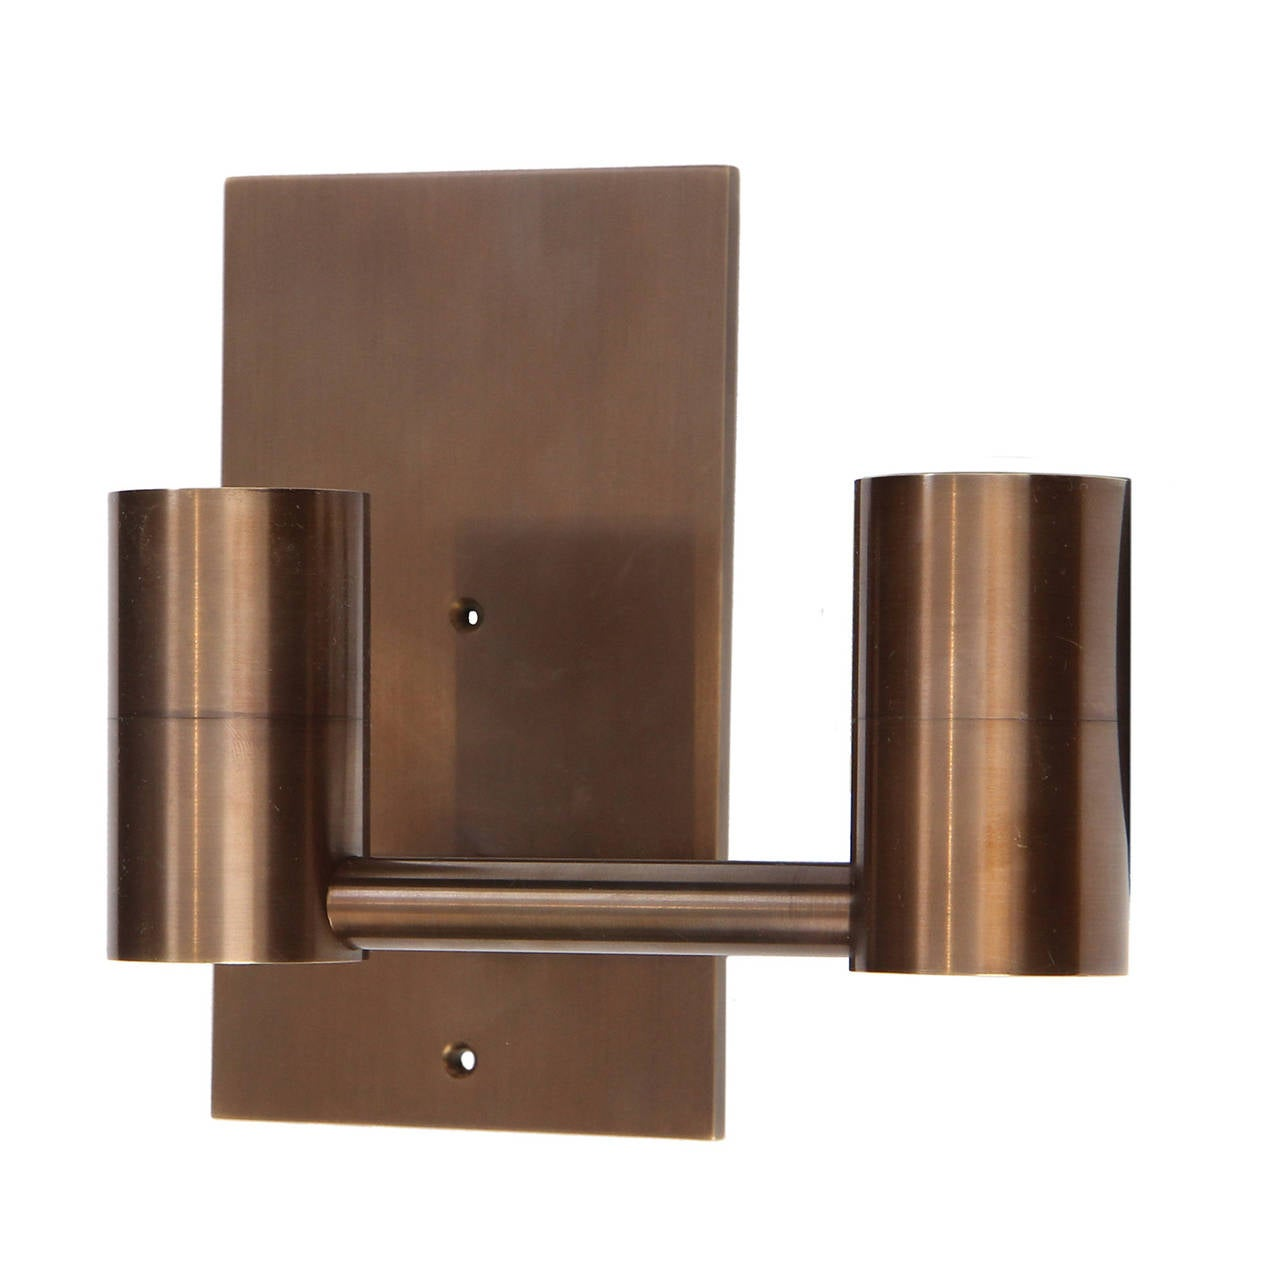 Double Arm Wall Sconce by Wyeth For Sale at 1stdibs